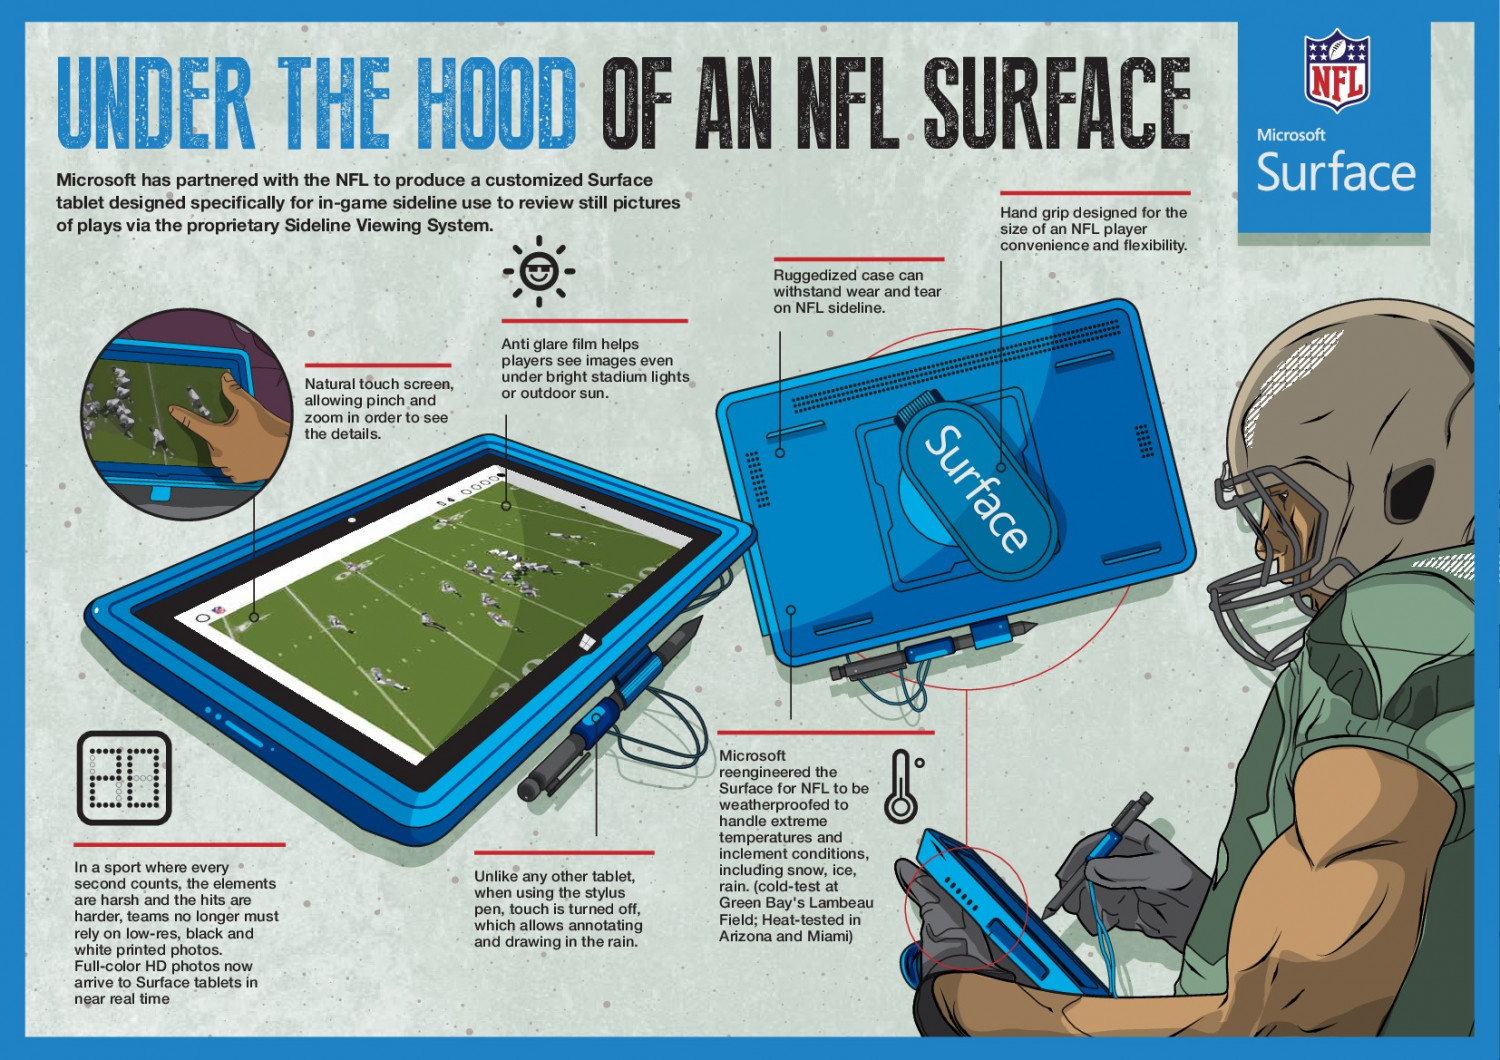 NFL X Surface Infographic